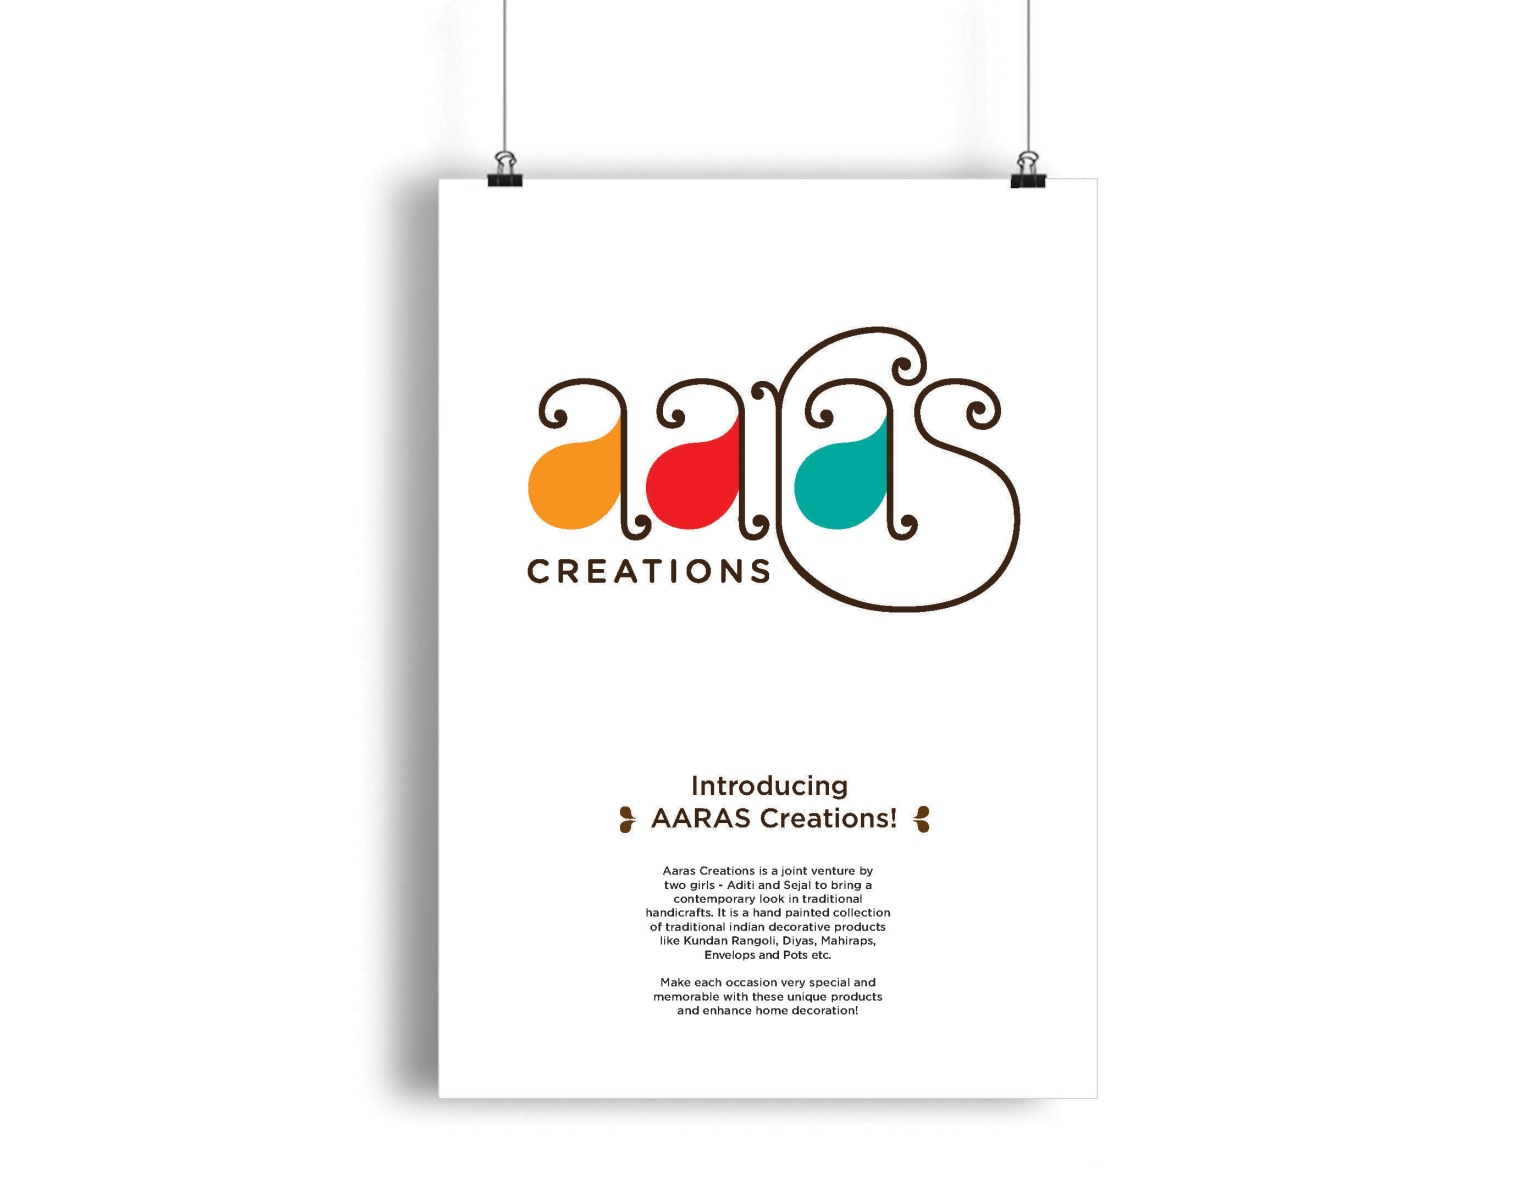 Aaras Creations | Brand Identity and Collaterals